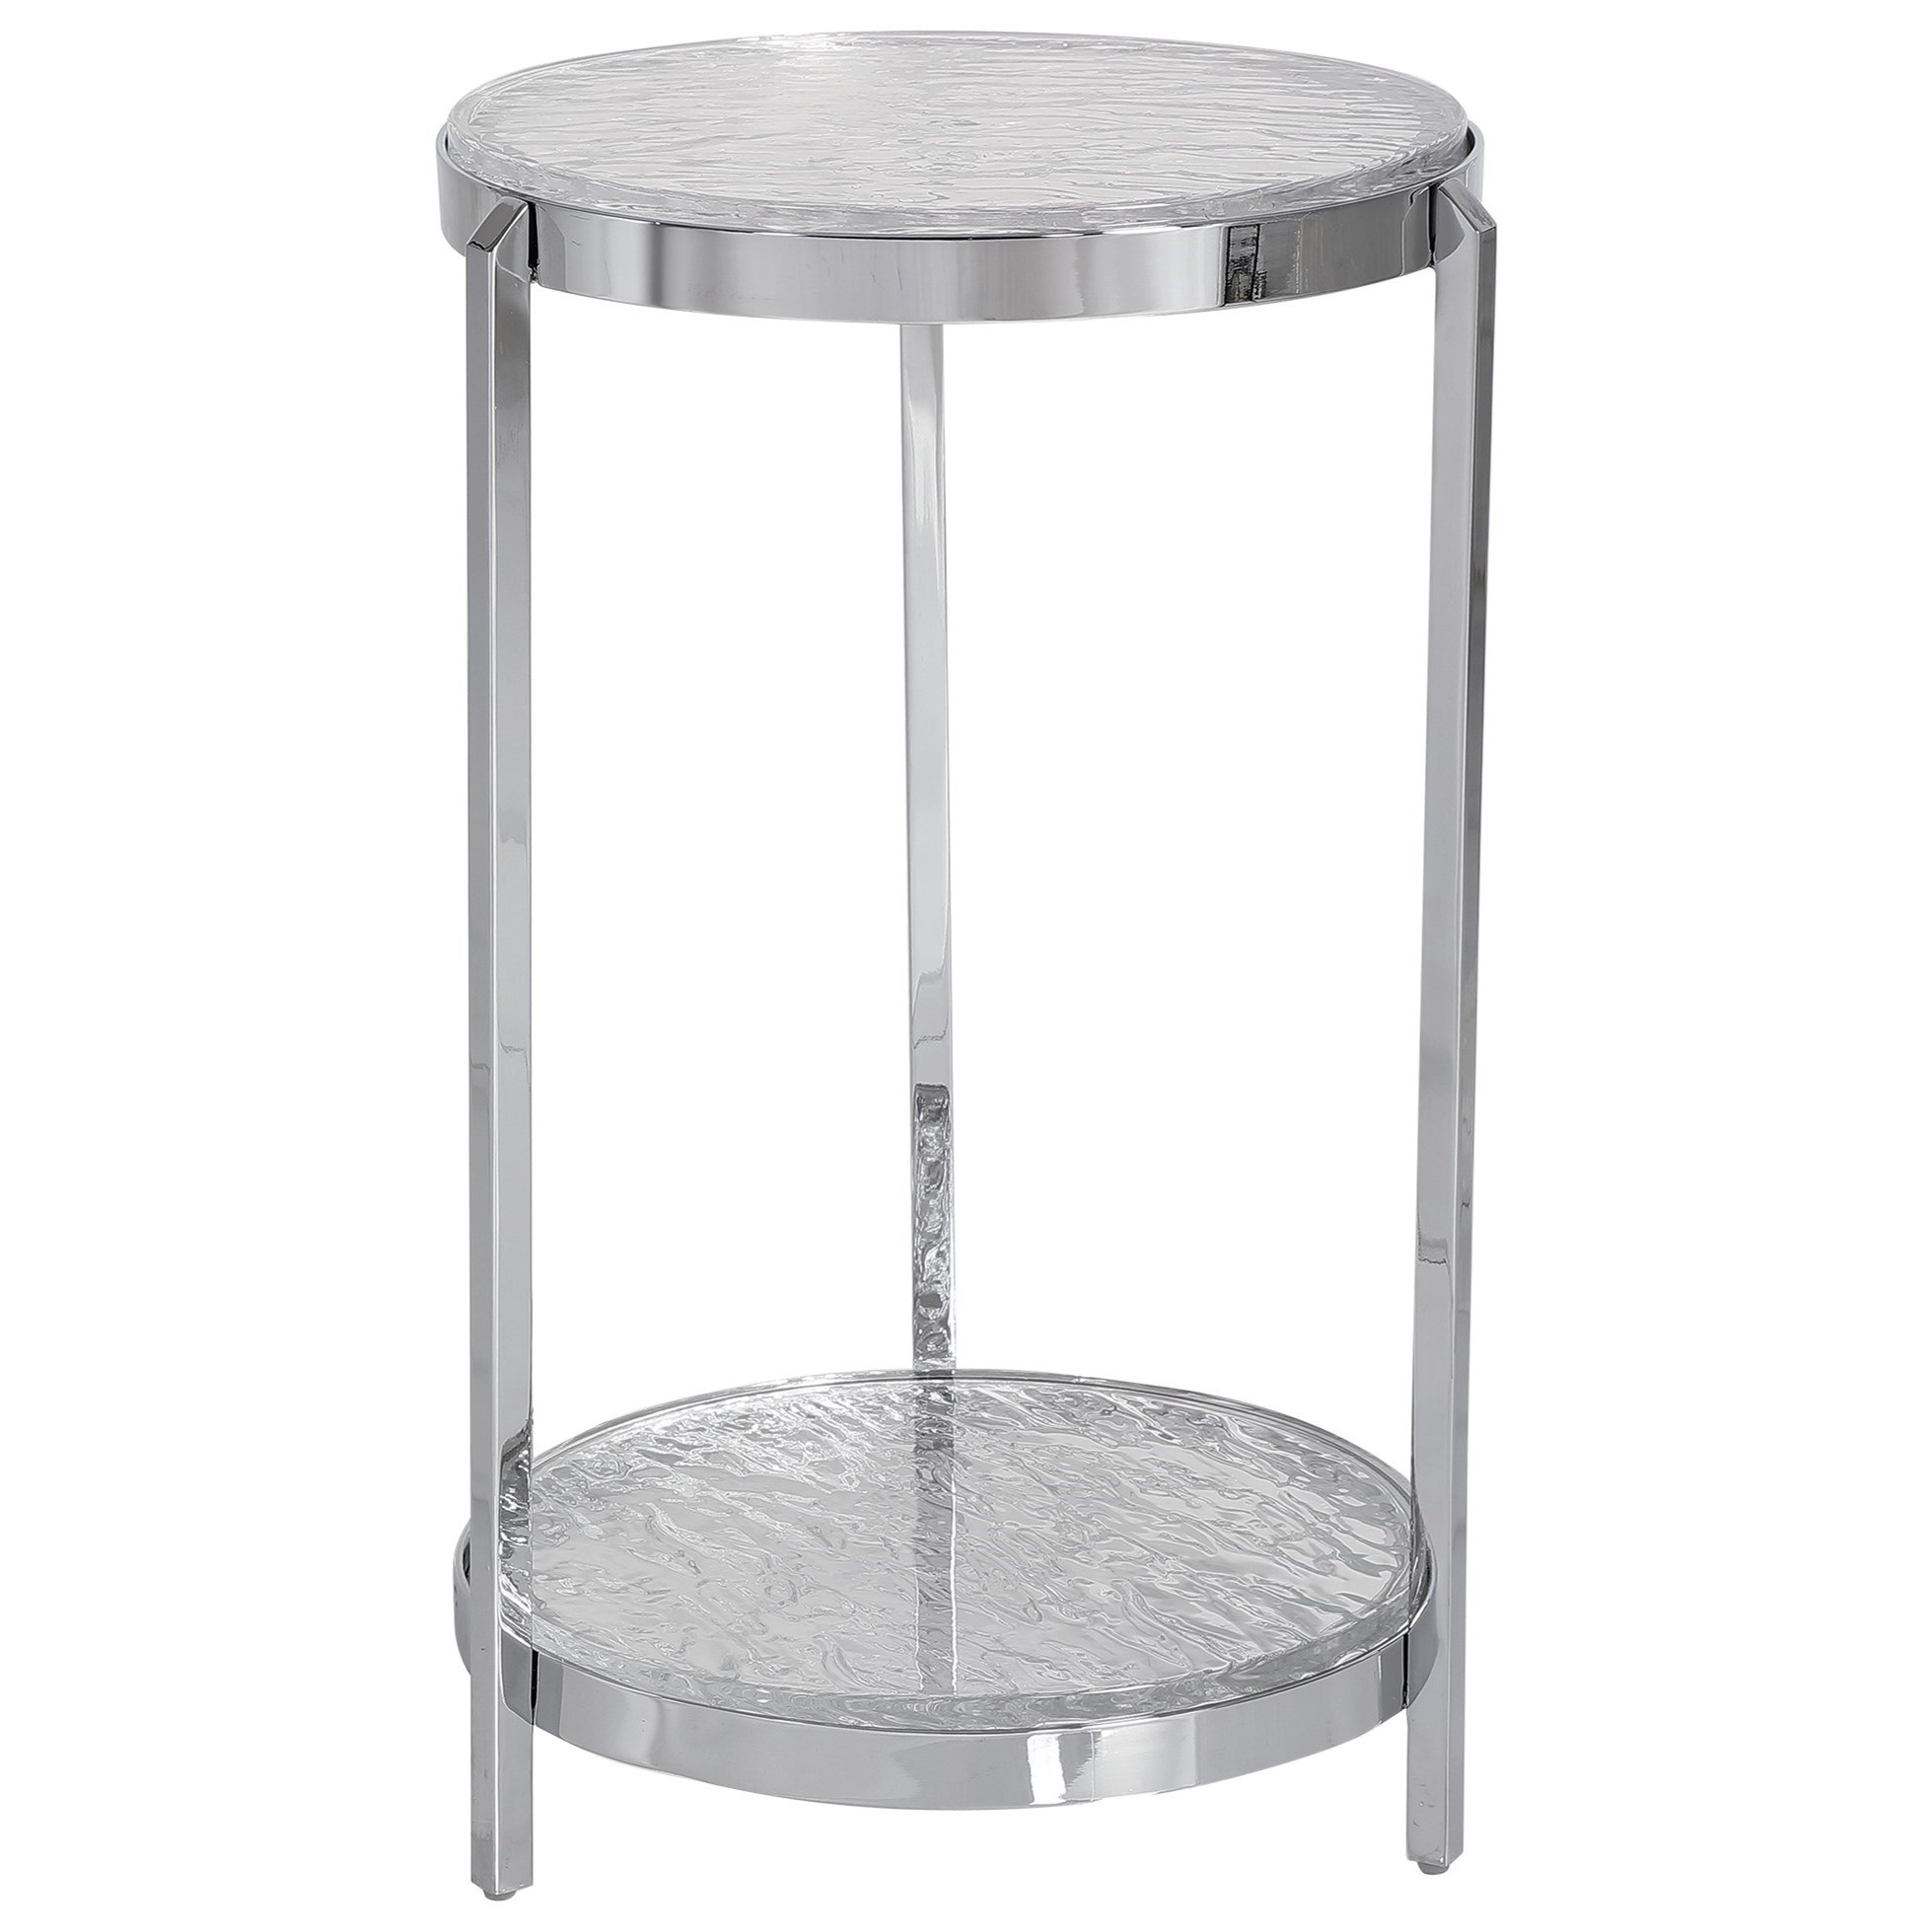 Accent Furniture - Occasional Tables Clarence Textured Glass Accent Table by Uttermost at Upper Room Home Furnishings